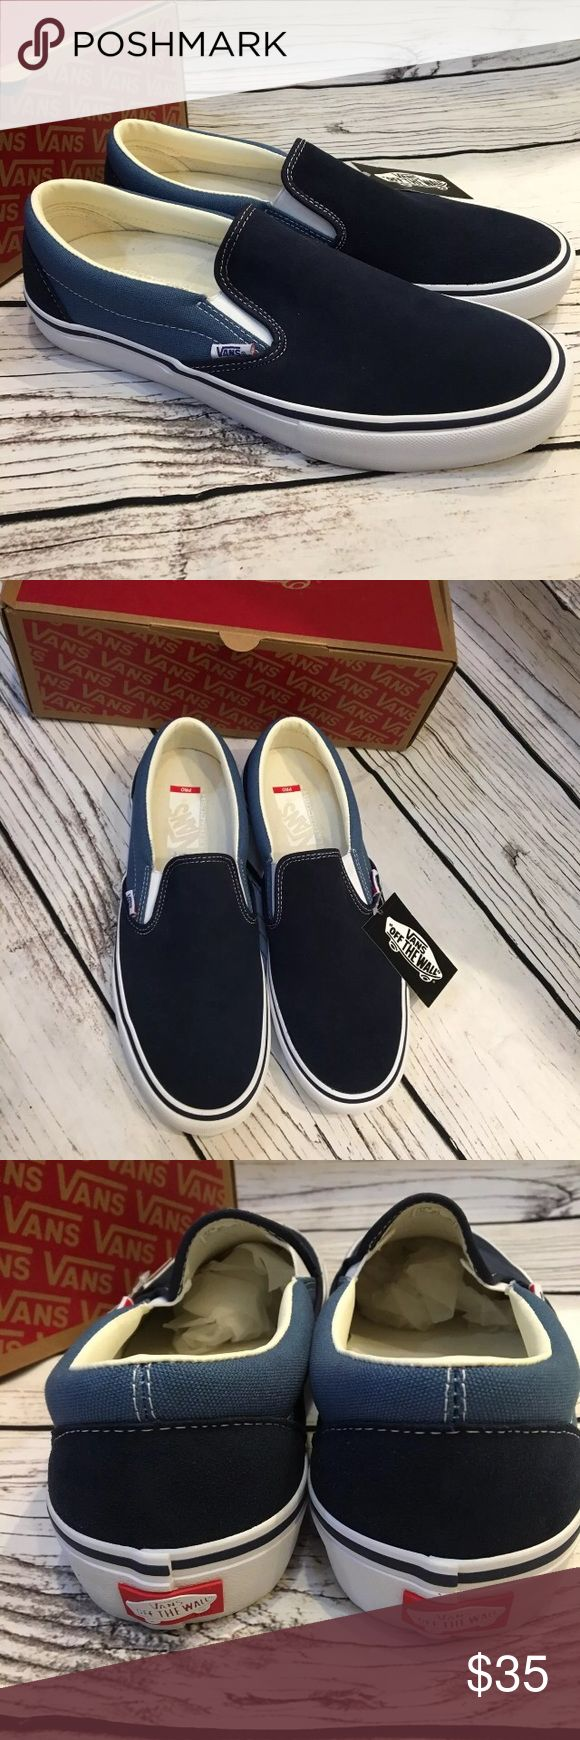 VANS Slip On Pro skate Shoes Mens 11 New In Box Retails: $65 Size: Mens 11.0 Vans Shoes Loafers & Slip-Ons